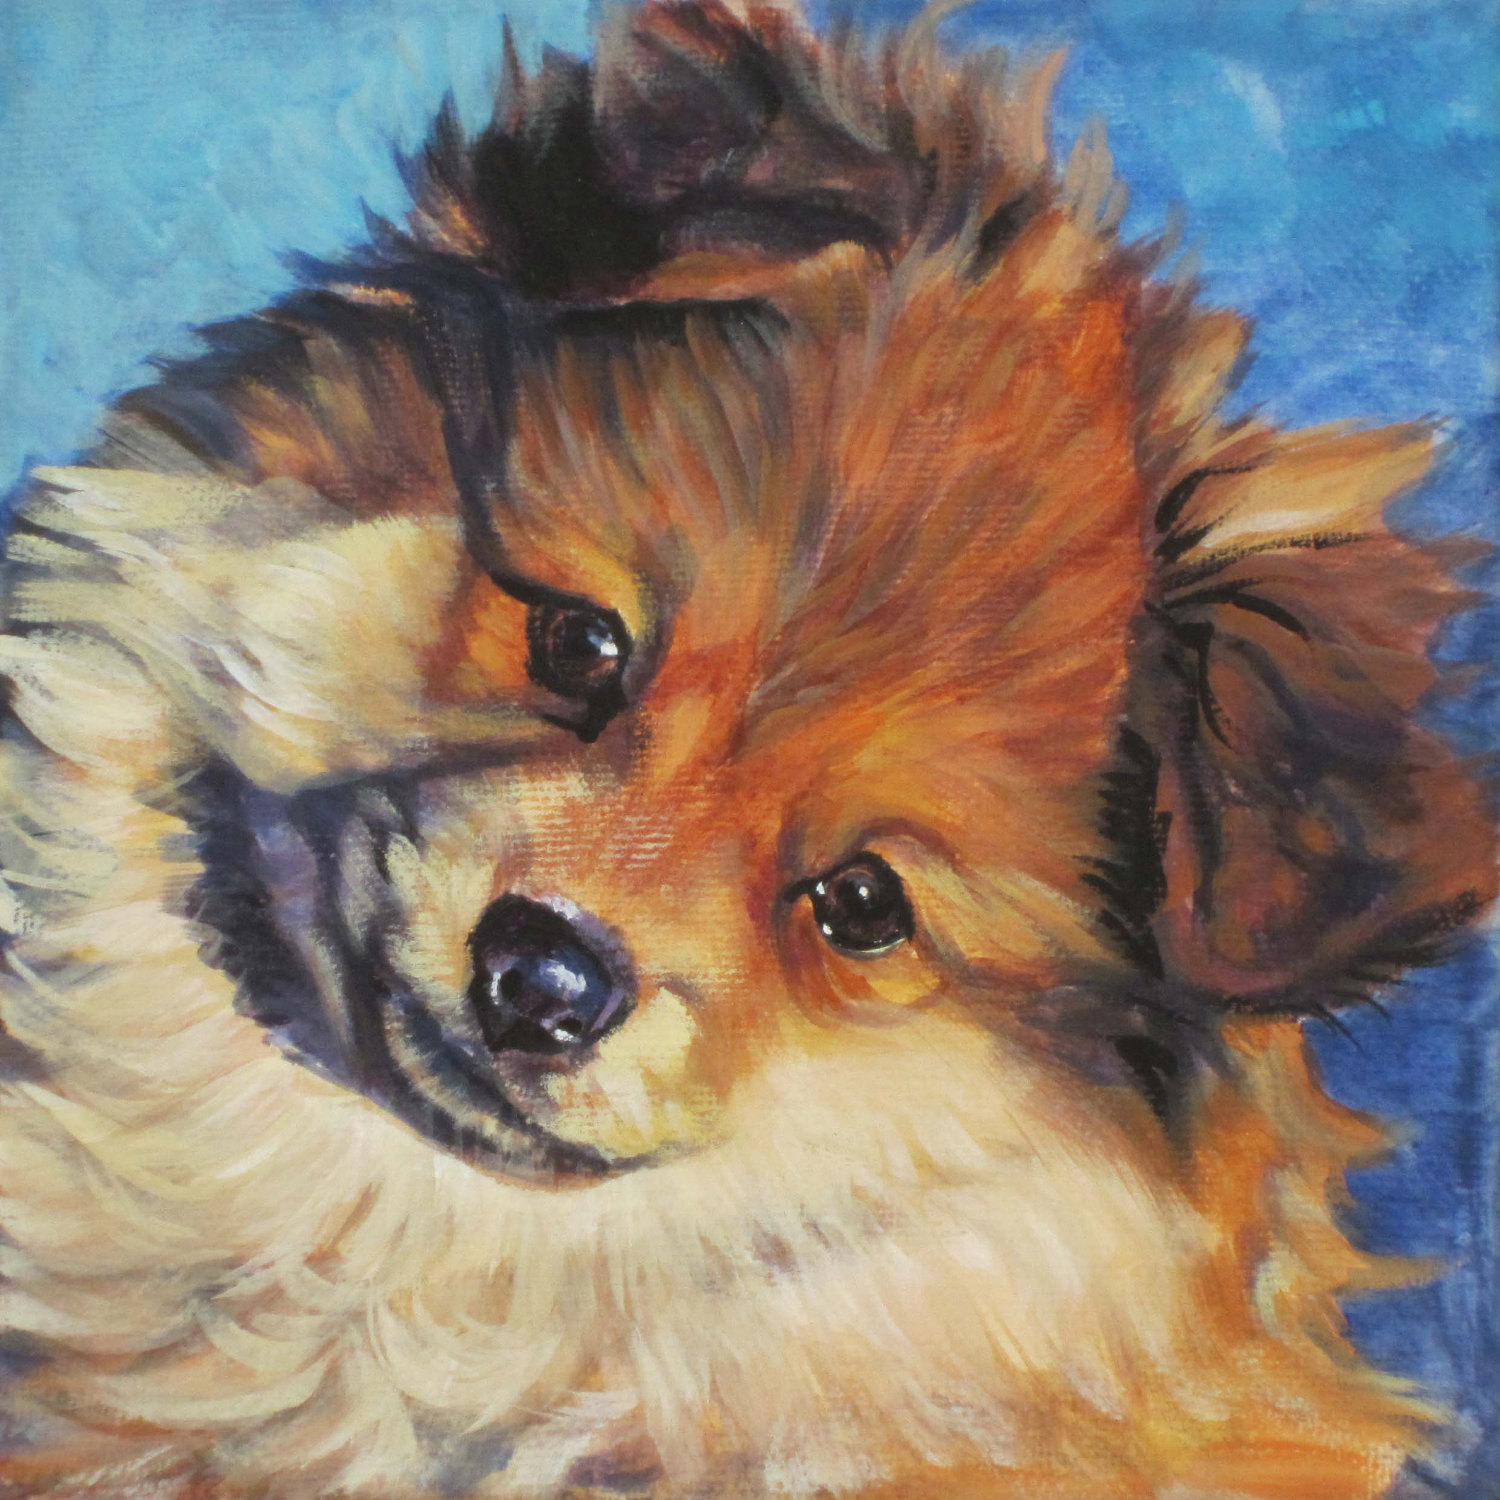 Drawn German Spitz dog wallpaper